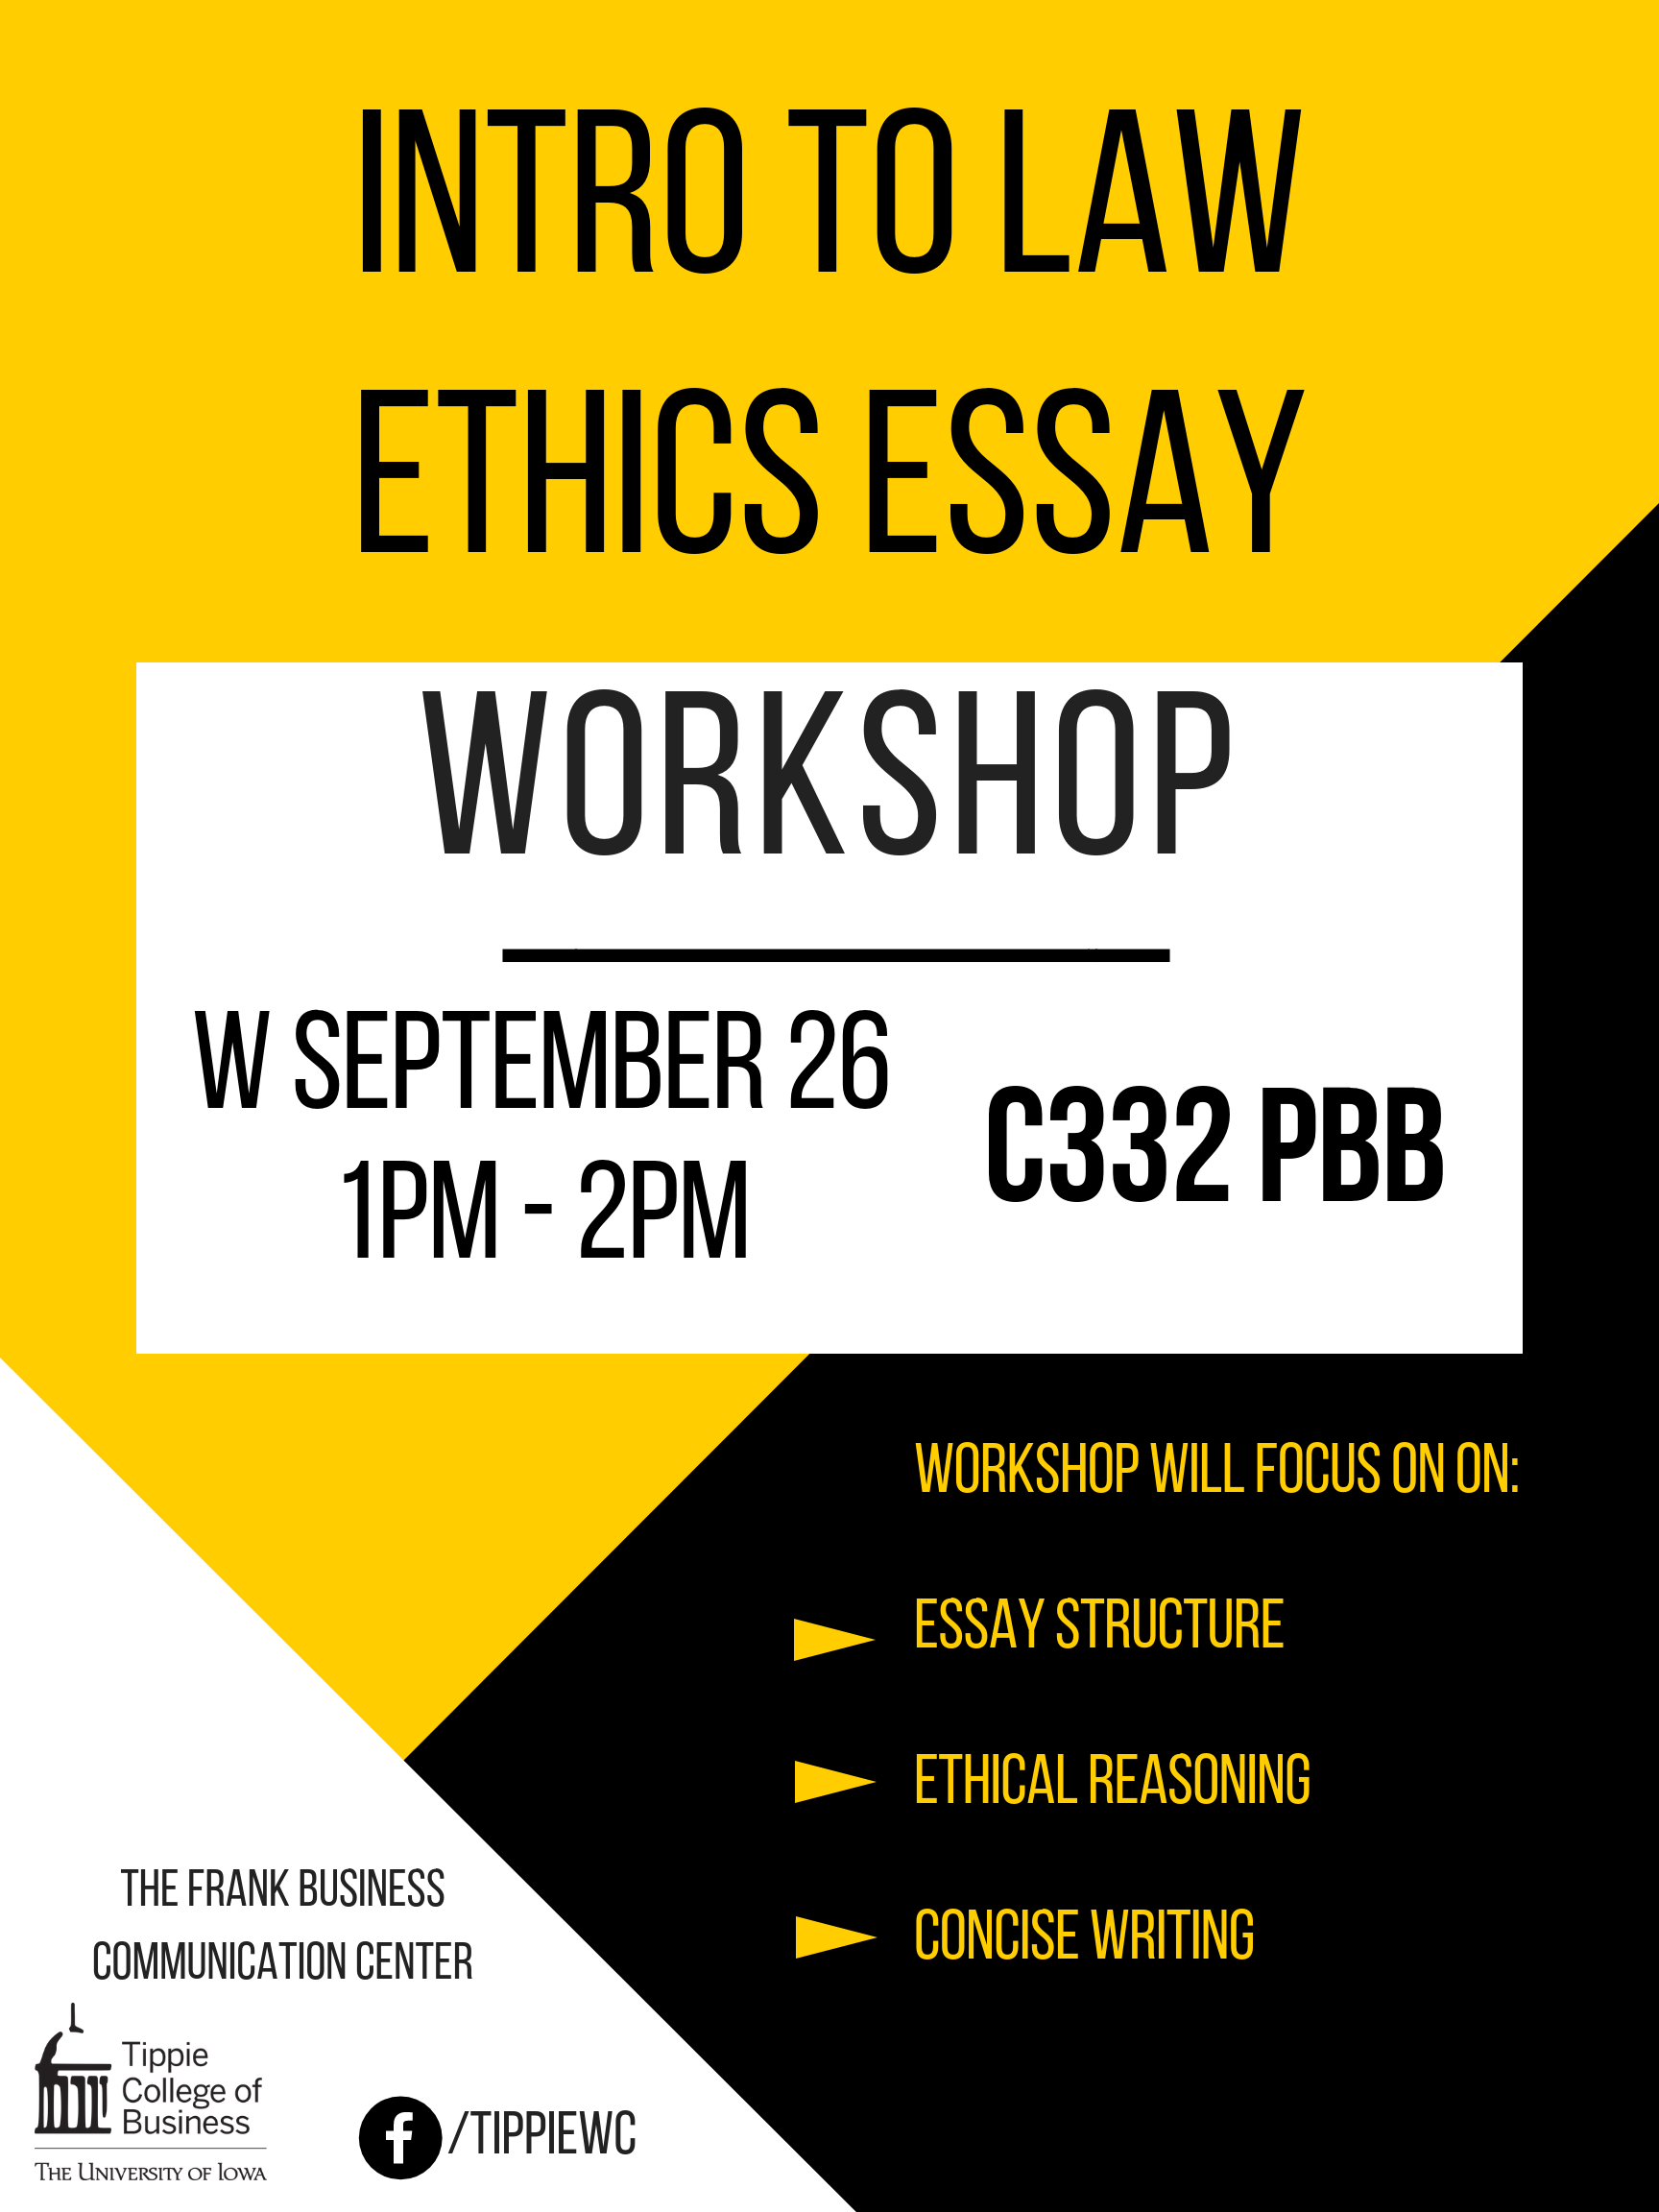 Intro To Law Mgmt Ethics Essay Workshop  Presented By The  All Tippie Students Are Invited To Attend This Onehour Essay Workshop  Sponsored By The Frank Business Communication Center